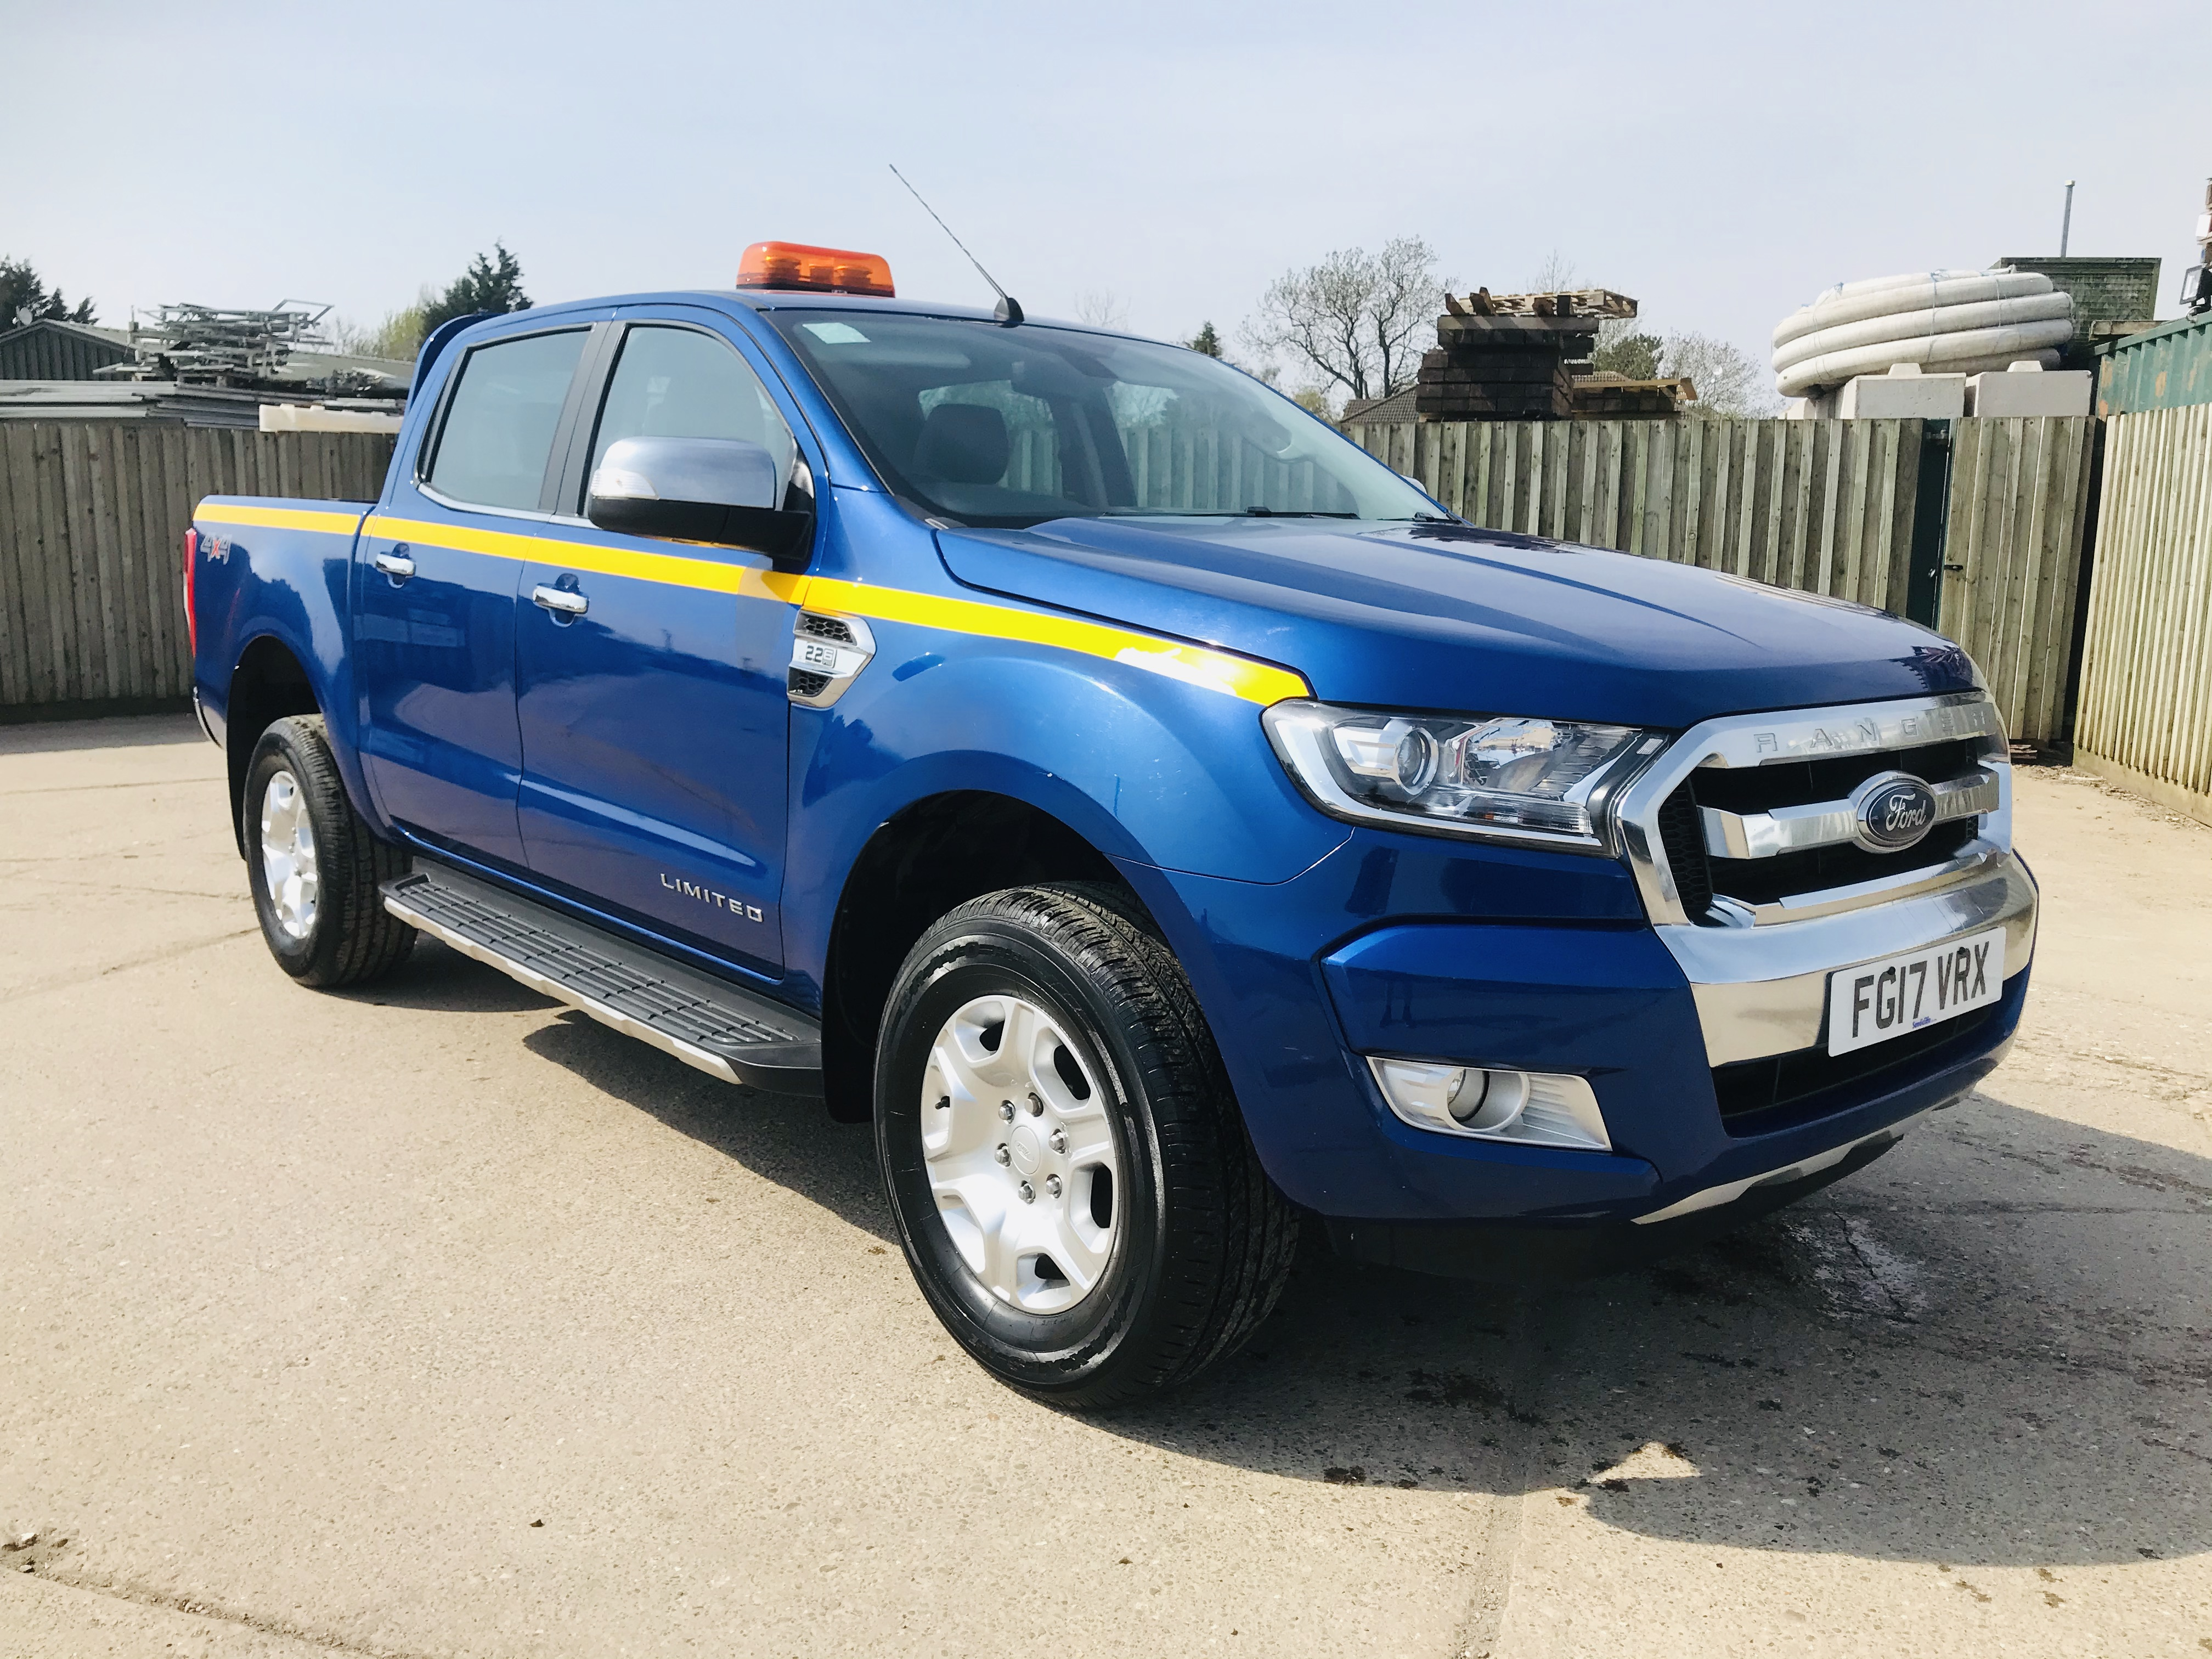 """ON SALE FORD RANGER 2.2TDCI """"LIMITED"""" D/C PICK UP (17 REG) 1 OWNER FSH - FULL LEATHER - CLIMATE & AC - Image 3 of 38"""